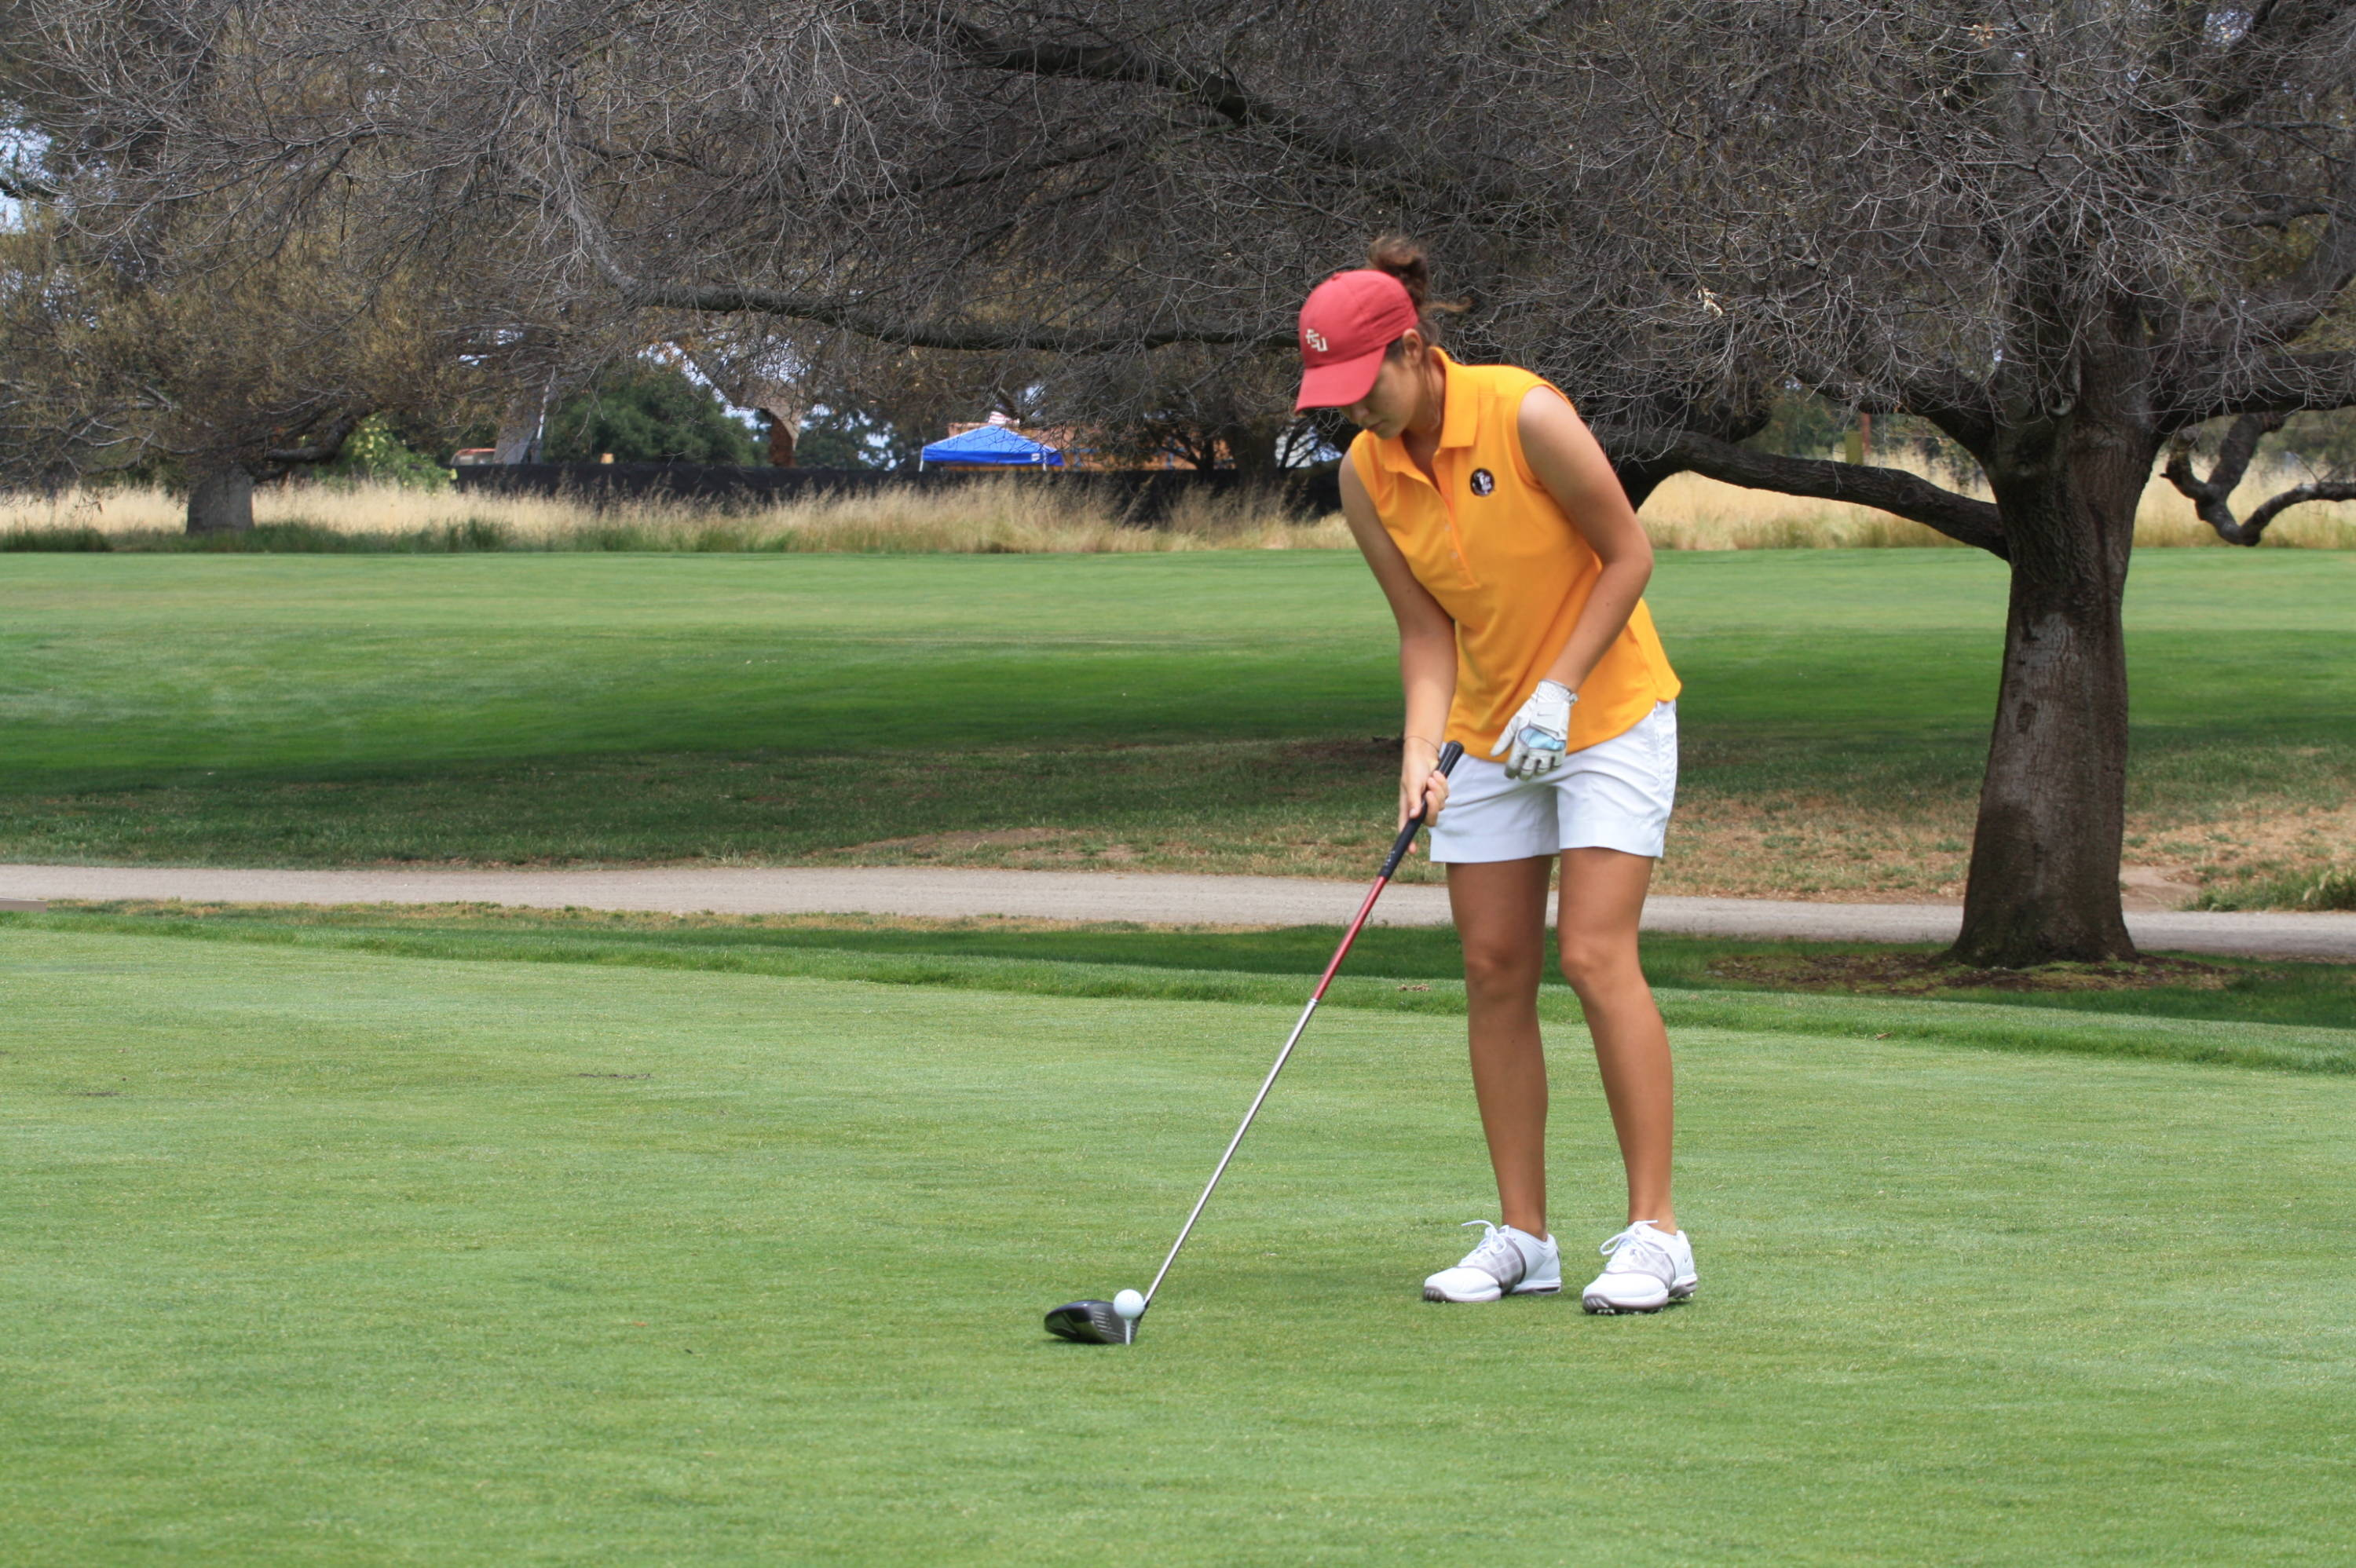 Laure Castelain -- 2013 NCAA West Regional